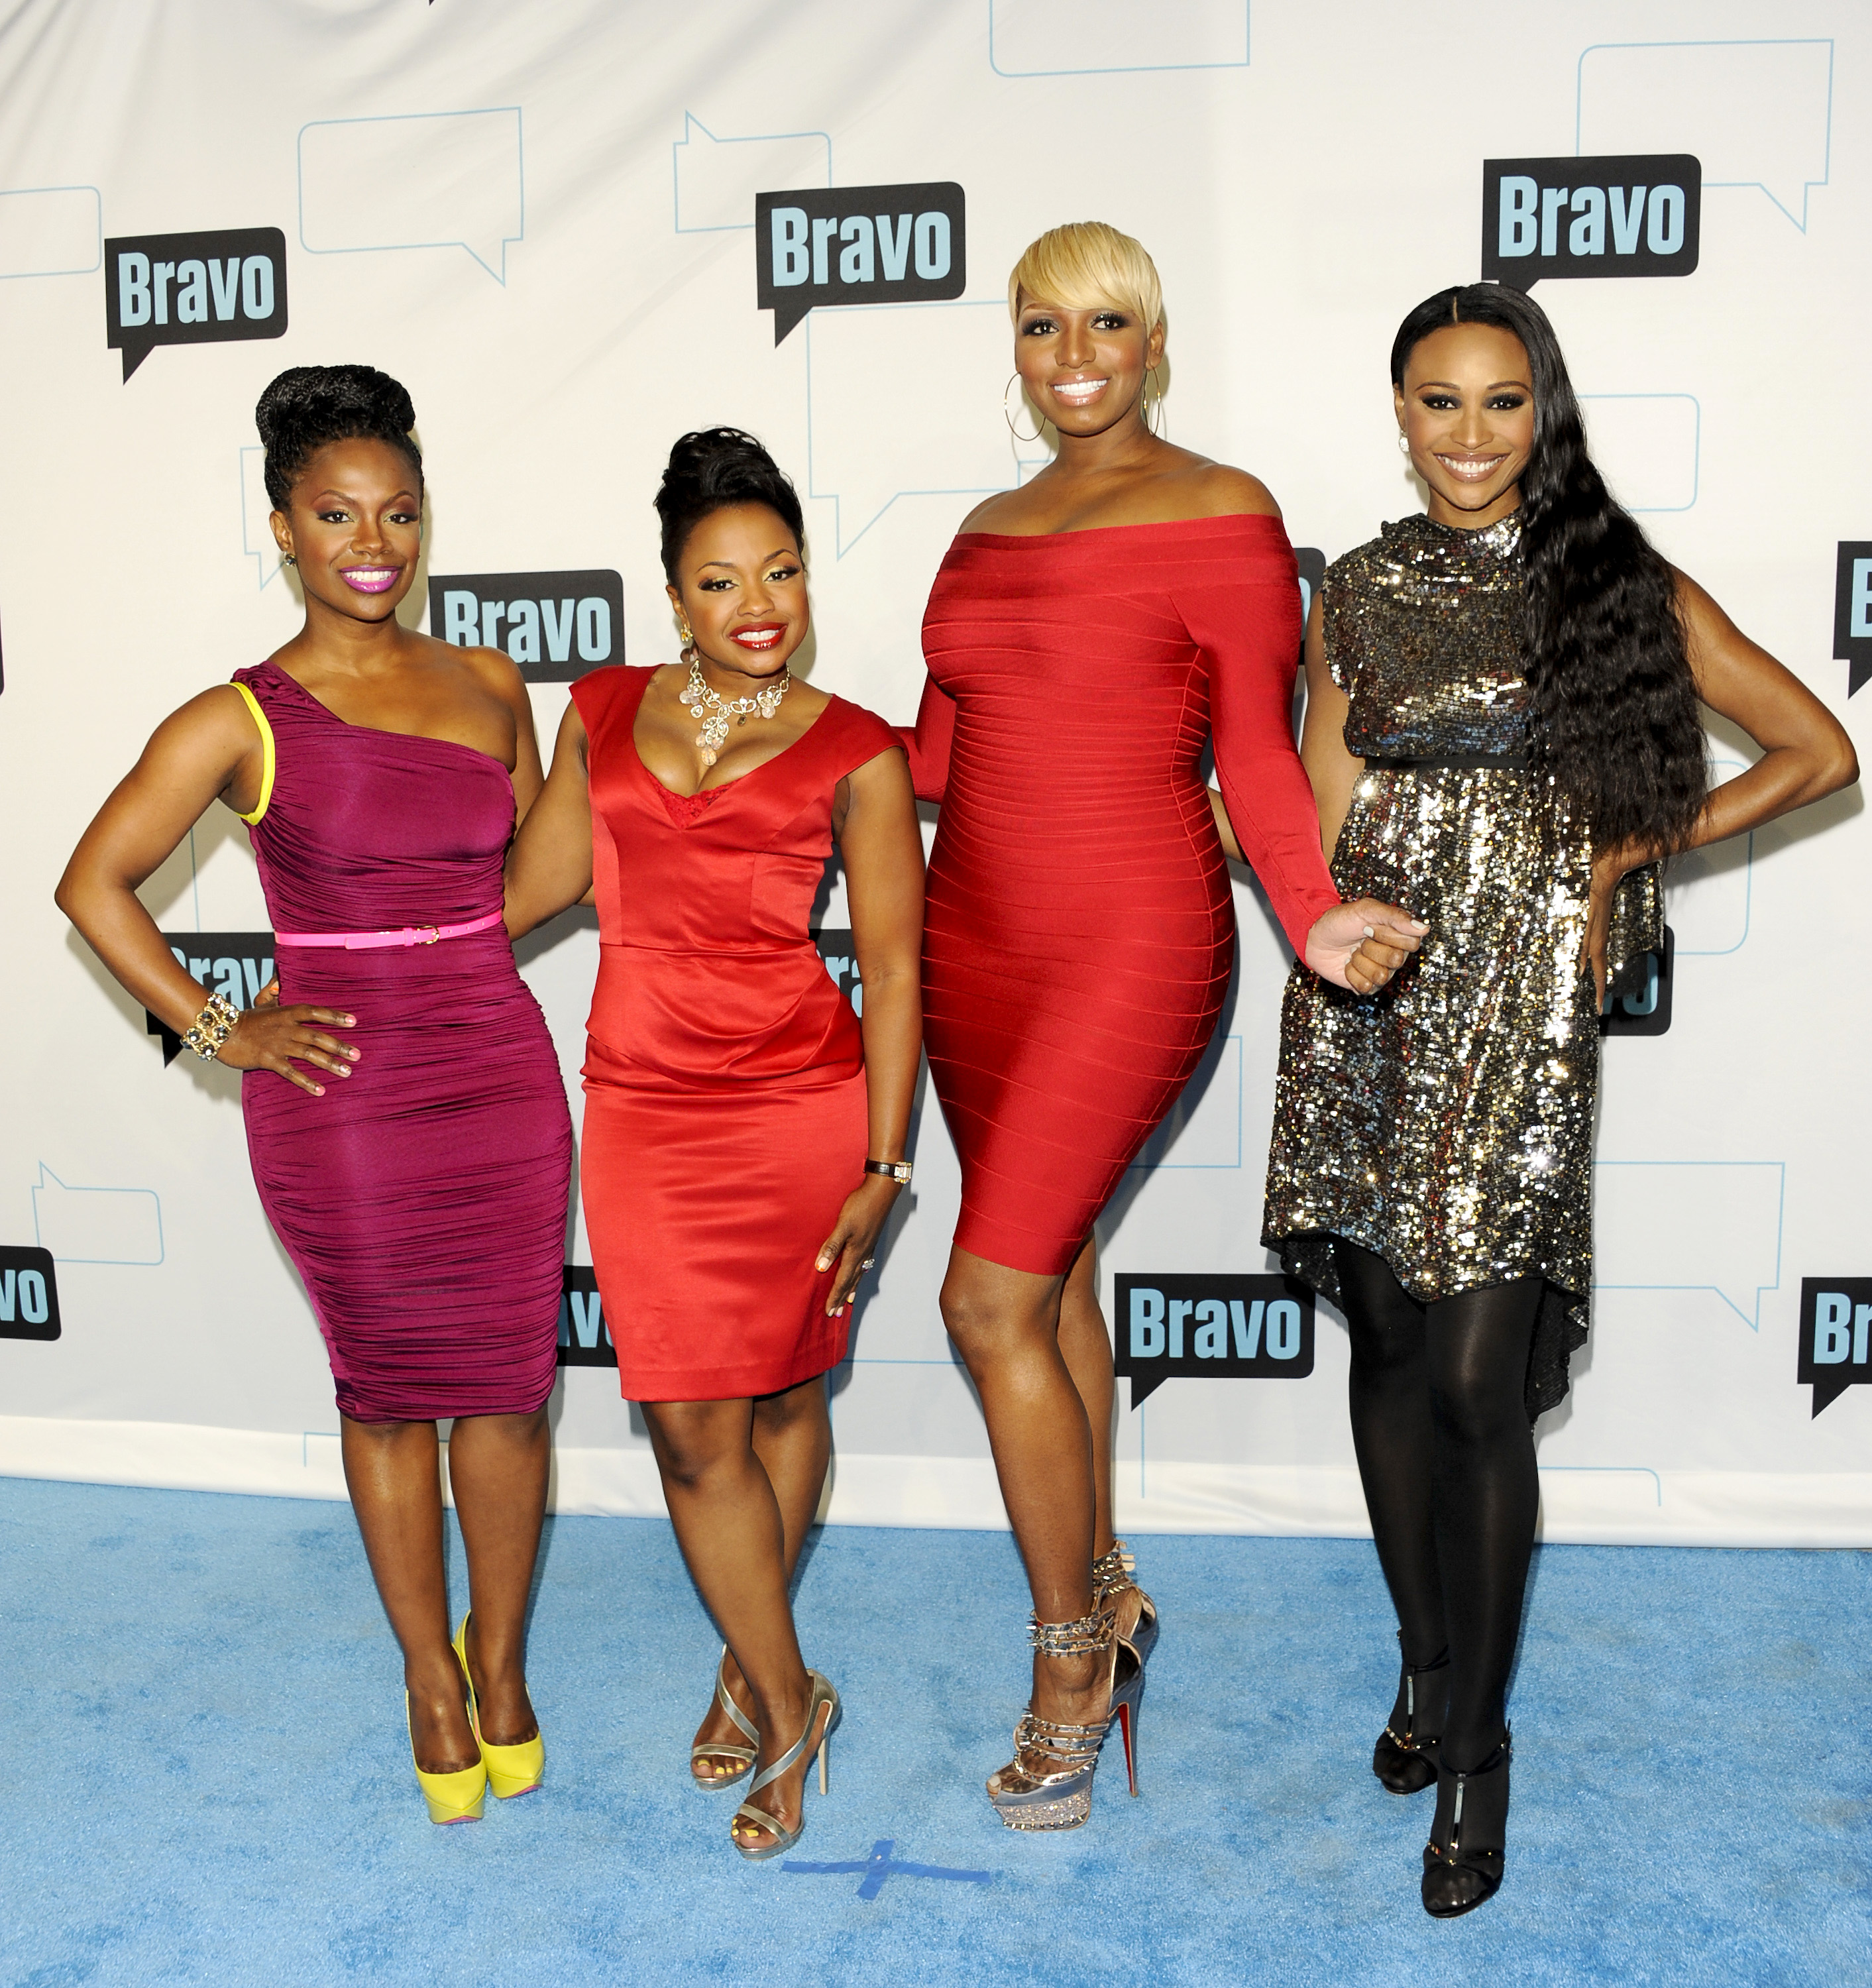 "Cast members from ""The Real Housewives of Atlanta"", from left, Kandi Burruss, Phaedra Parks, NeNe Leakes and Cynthia Bailey attend the Bravo network 2012 upfront presentation on Wednesday, April 4, 2012 in New York. (AP Photo/Evan Agostini)"